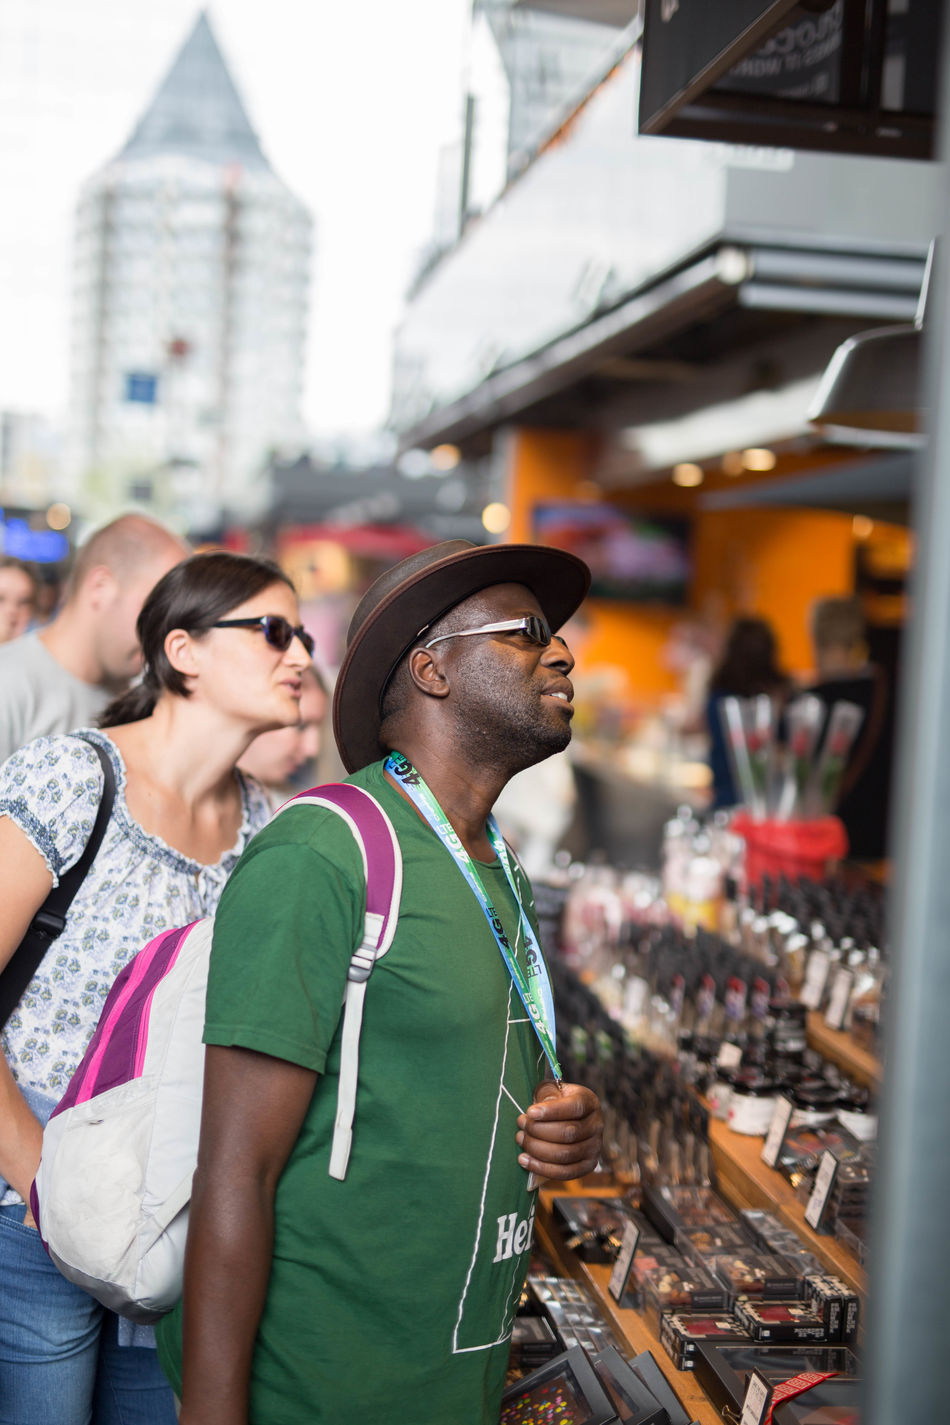 City Life Event Focus On Foreground Markthal Person Rotterdam Standing Zerofotografie.nl